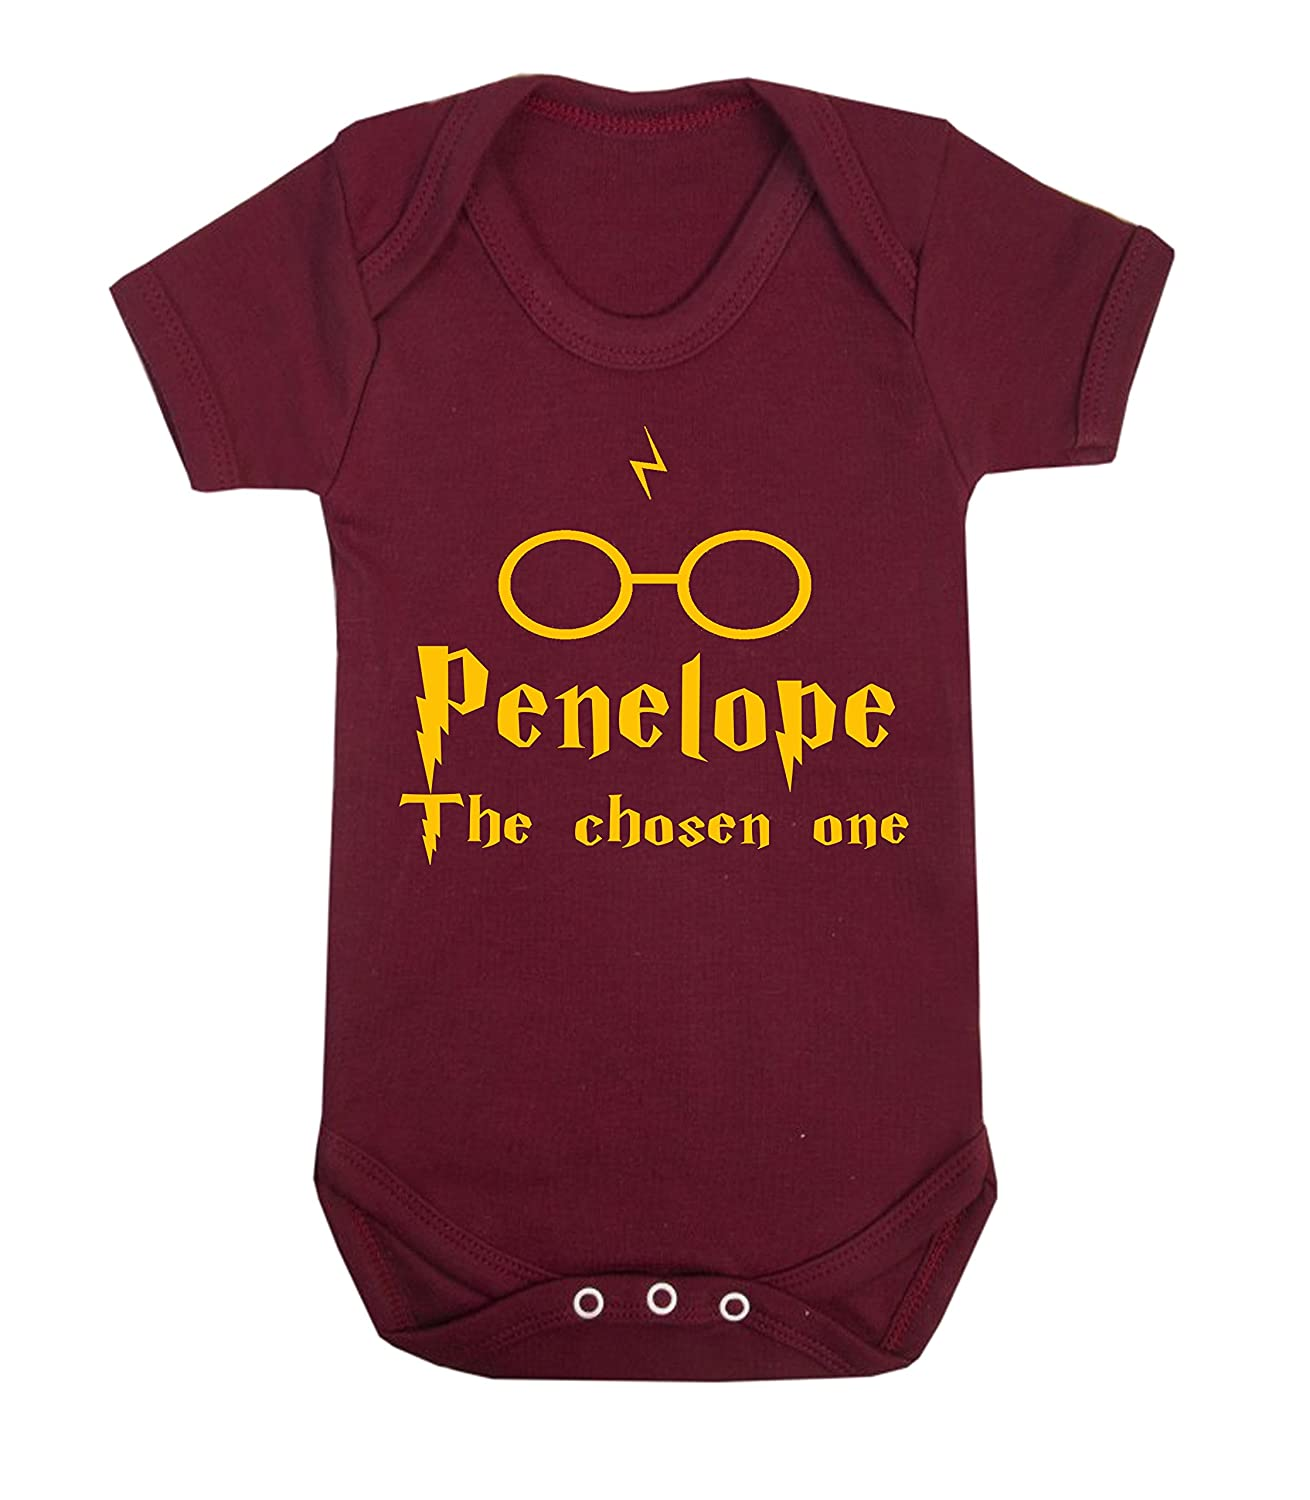 The Chosen One Harry Potter Inspired Baby Vest  Babygrow Baby Gifts